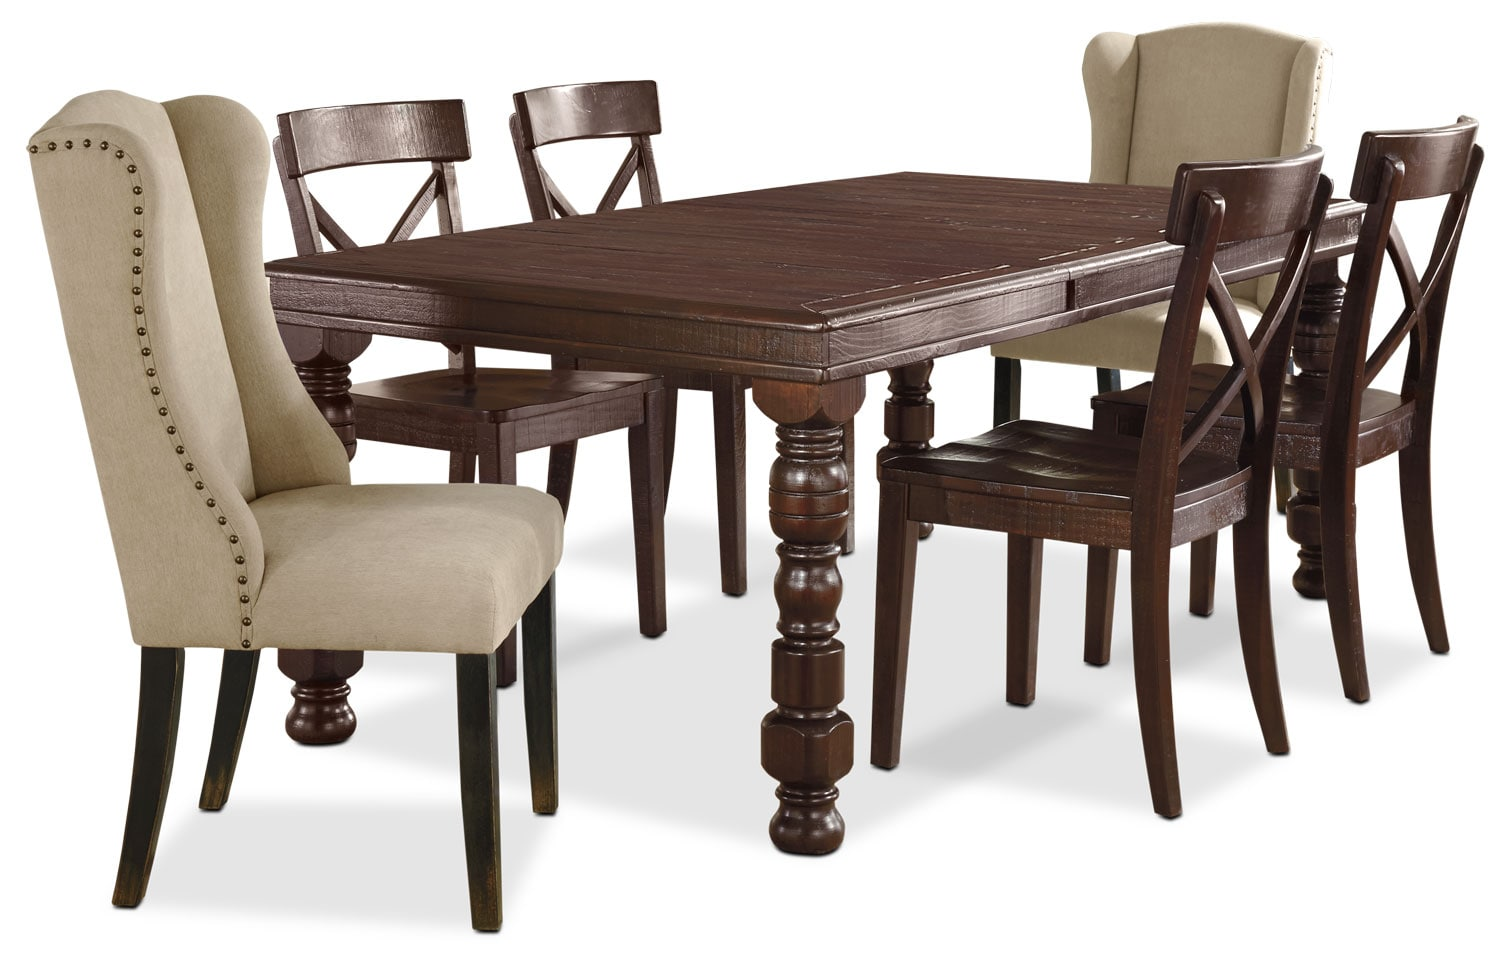 Dining Room Furniture - Gerlane 7-Piece Dining Package with Upholstered Side Chairs